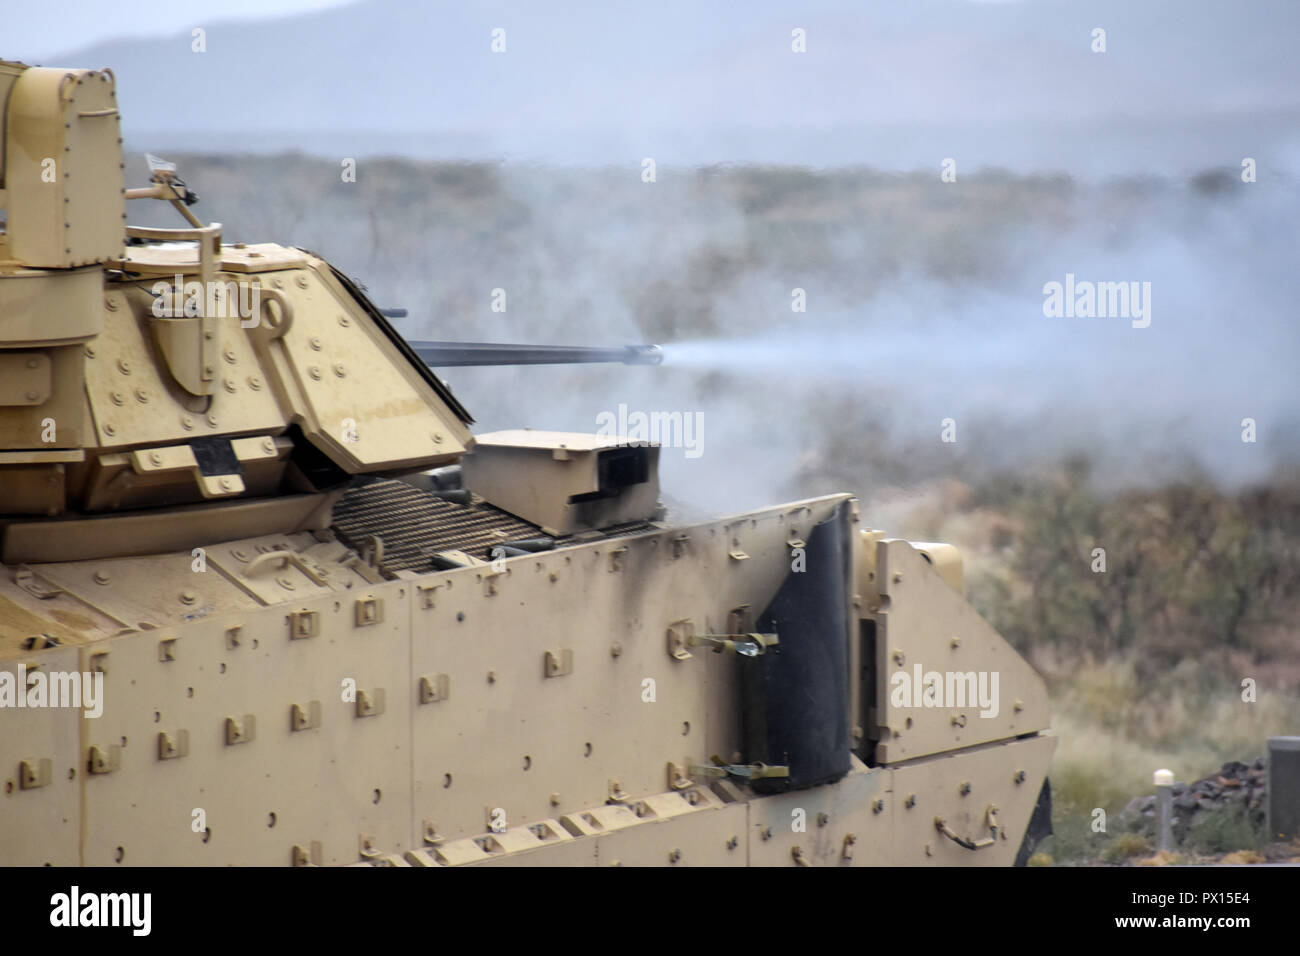 M242 Bushmaster Stock Photos & M242 Bushmaster Stock Images - Alamy